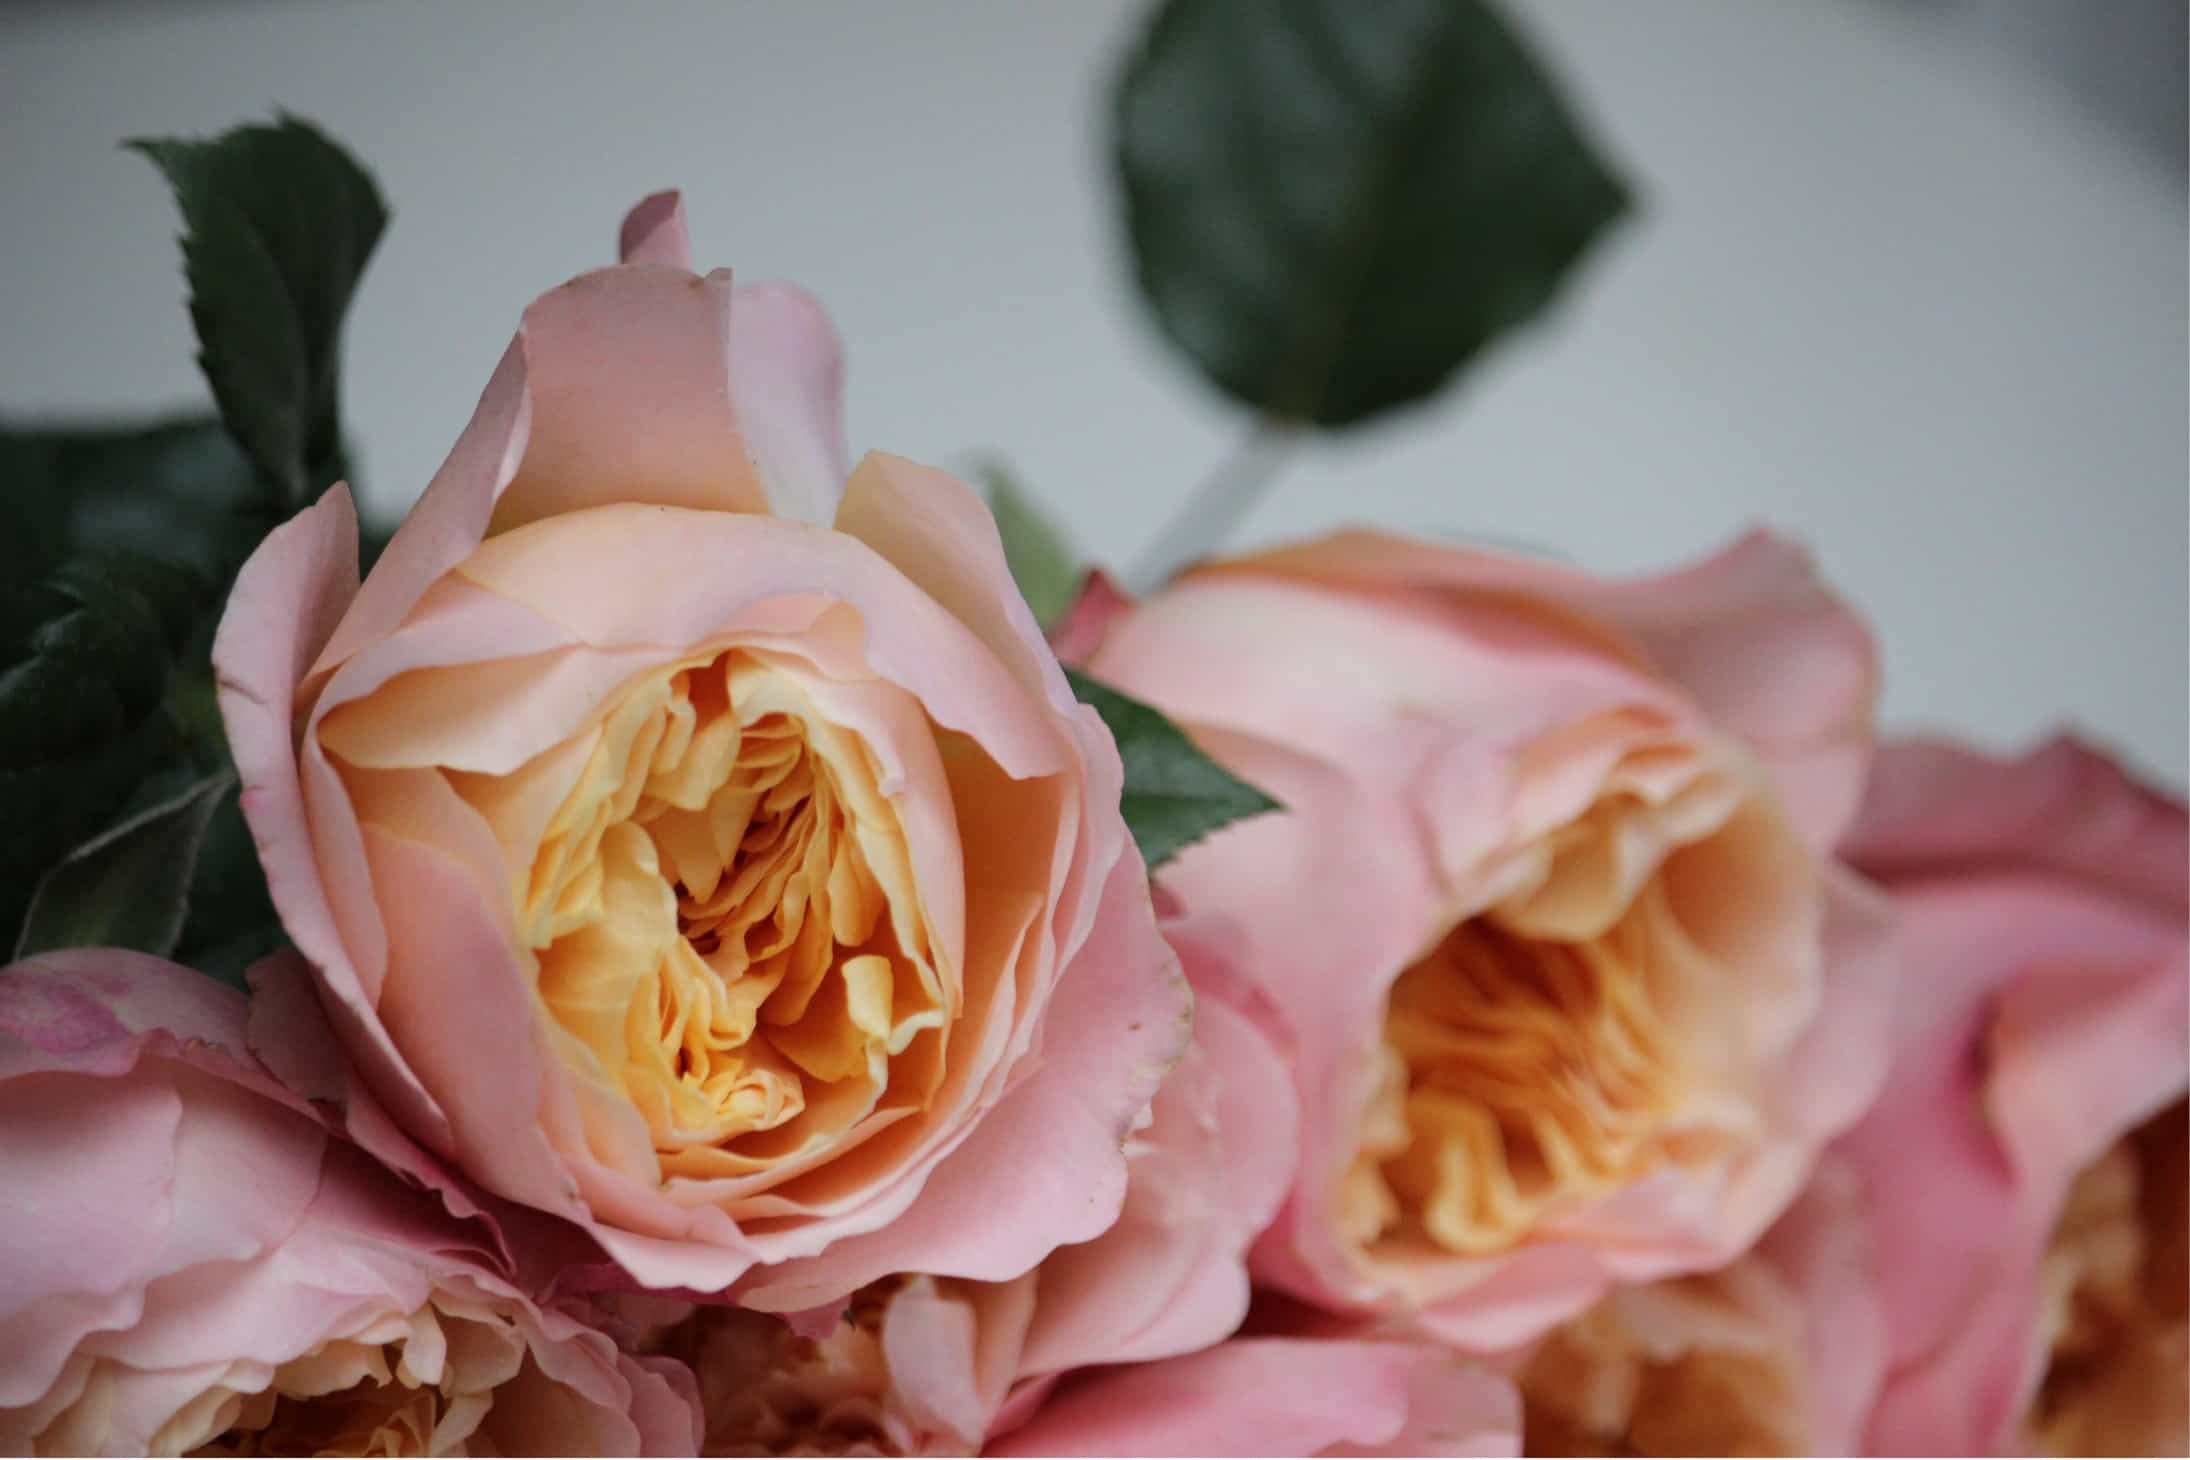 The smell of roses the smell of roses the smell of roses most people feel an urge to smell roses when they see them but few know what is responsible for this enchanting scente proliferation of fake rose scents mightylinksfo